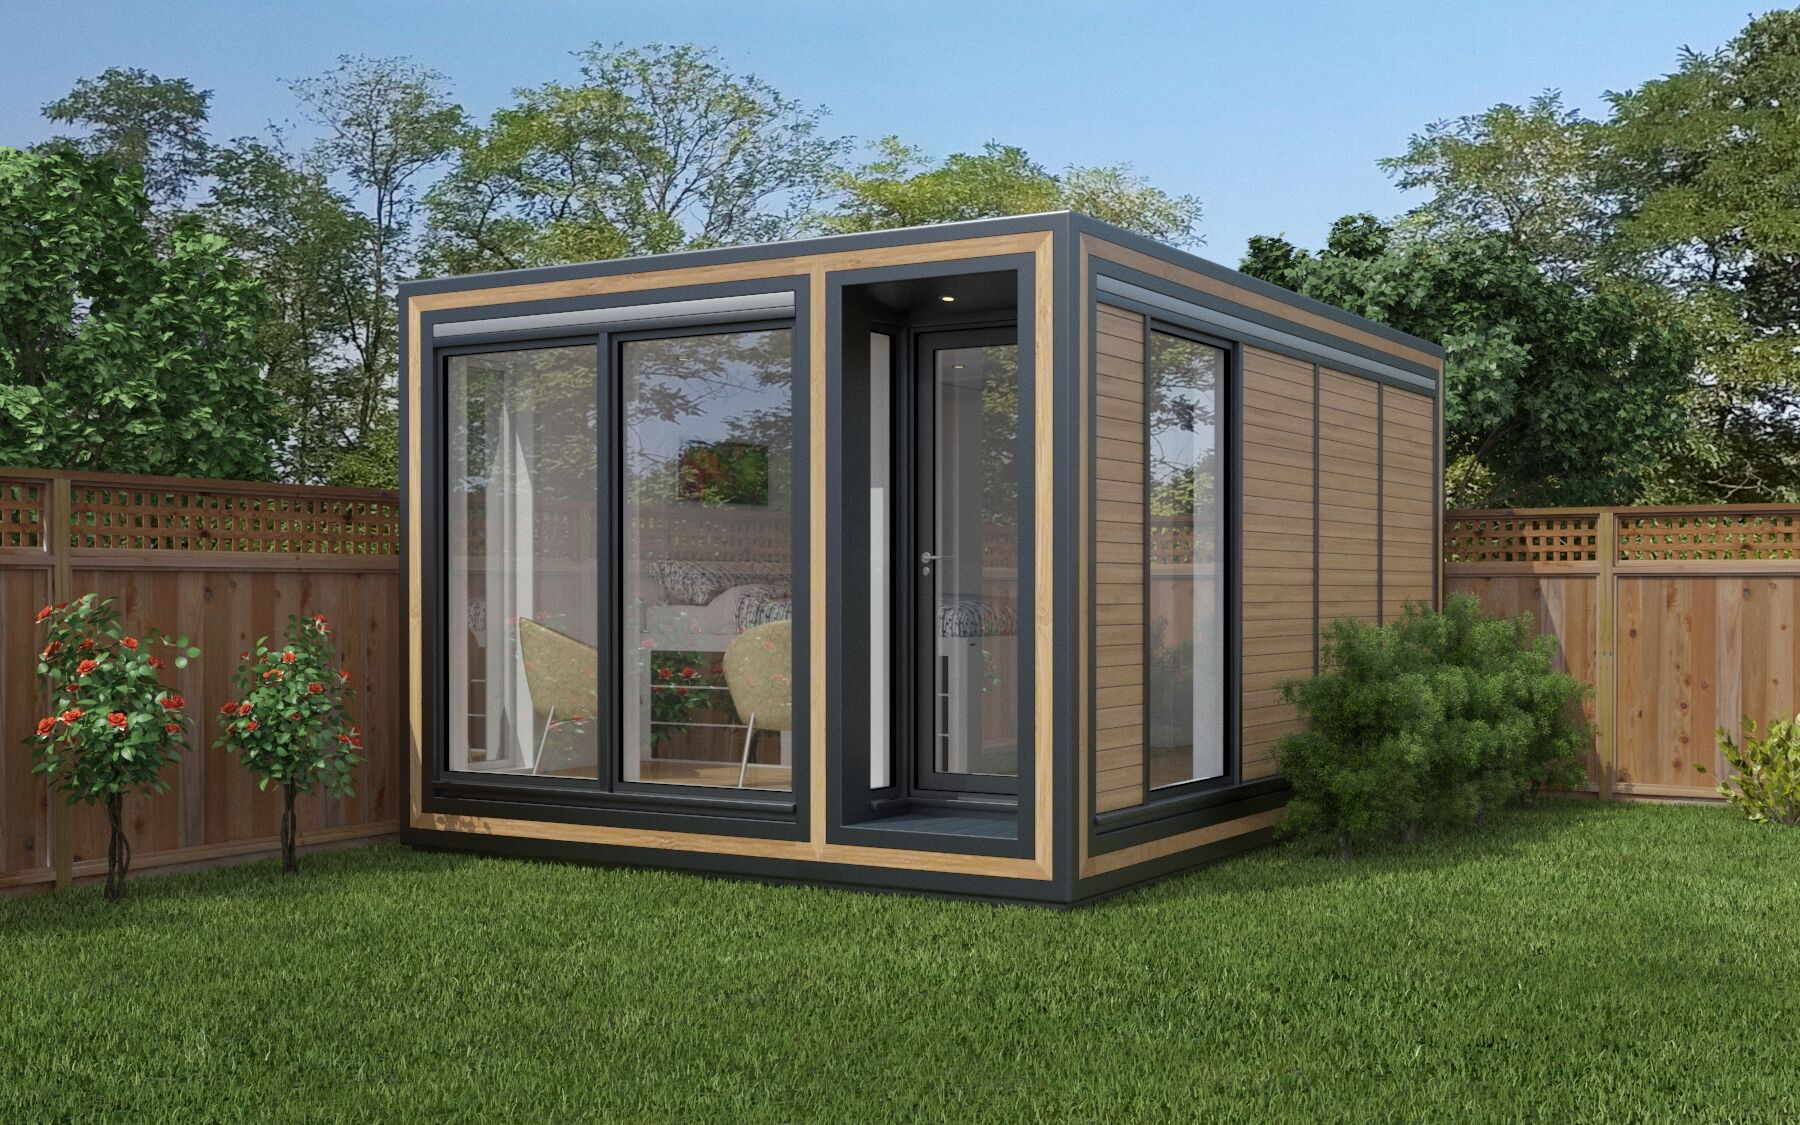 ZEDBOX 345  (3 x 4.5)  Internal Size: 3188 x 4817  External Size: 3658 x 5287  Bed Options: Single or Double  Kitchen Options: Micro or Premier  Wet Room Options: Yes  Portico: Yes  Price:  £29,000    Optional Extras    Request Zedbox Catalogue